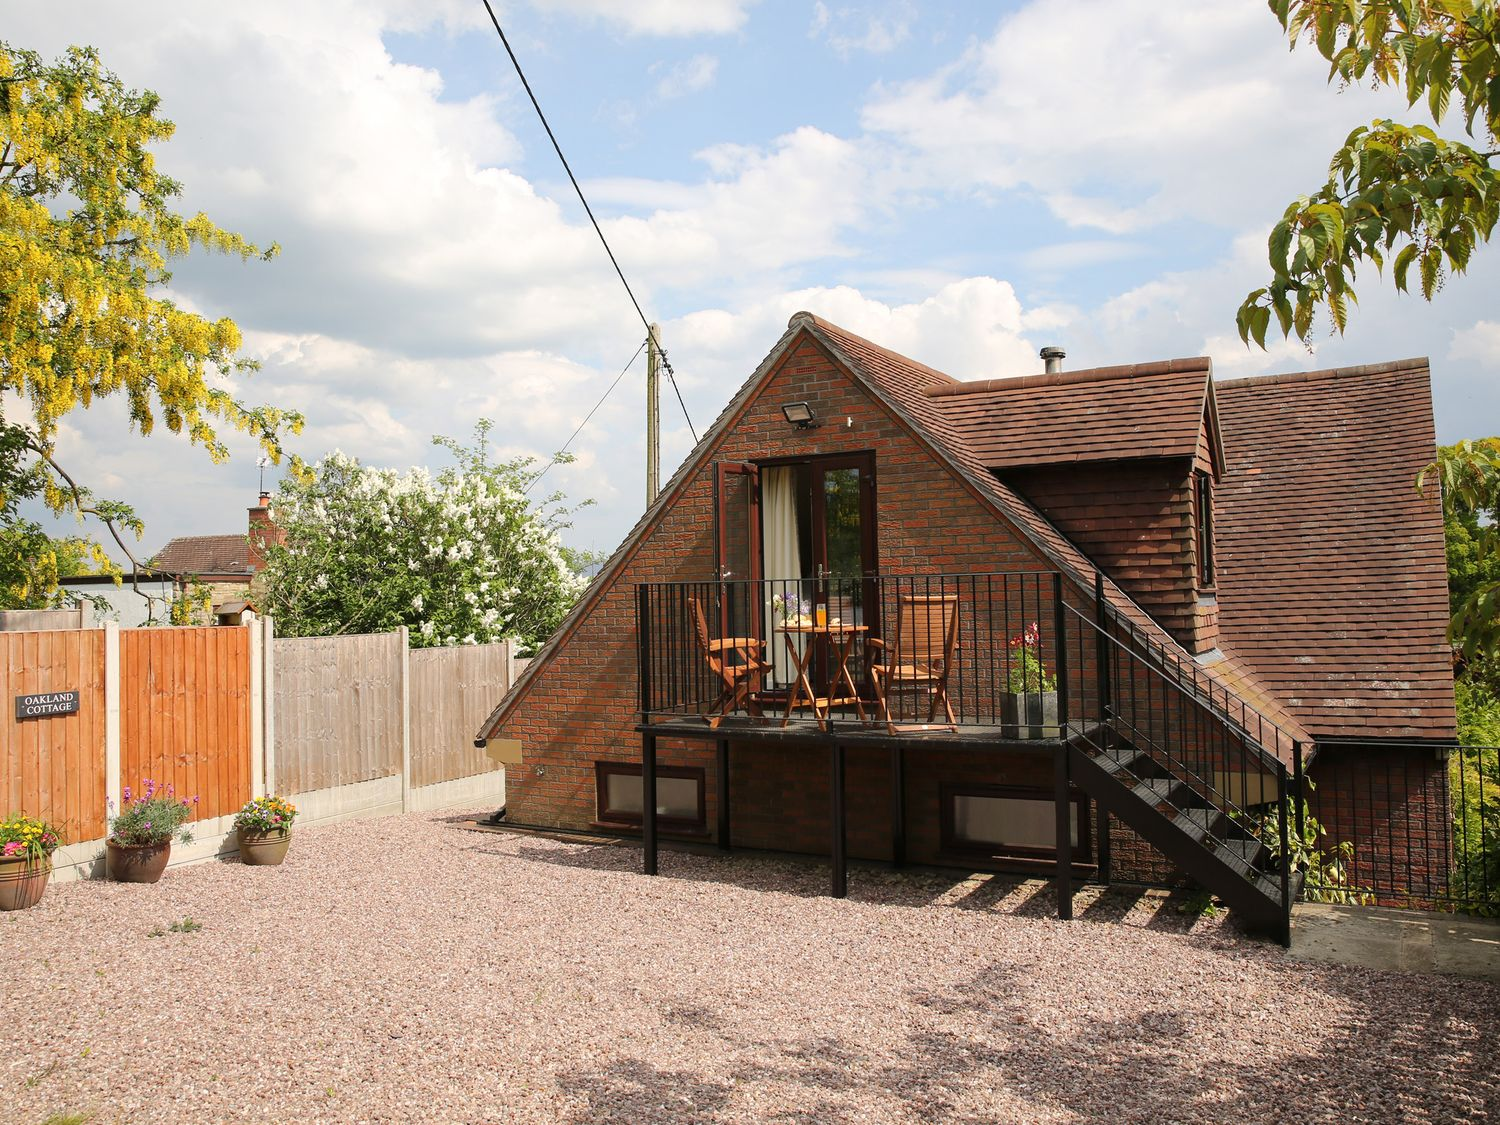 Oakland Cottage - Shropshire - 961681 - photo 1